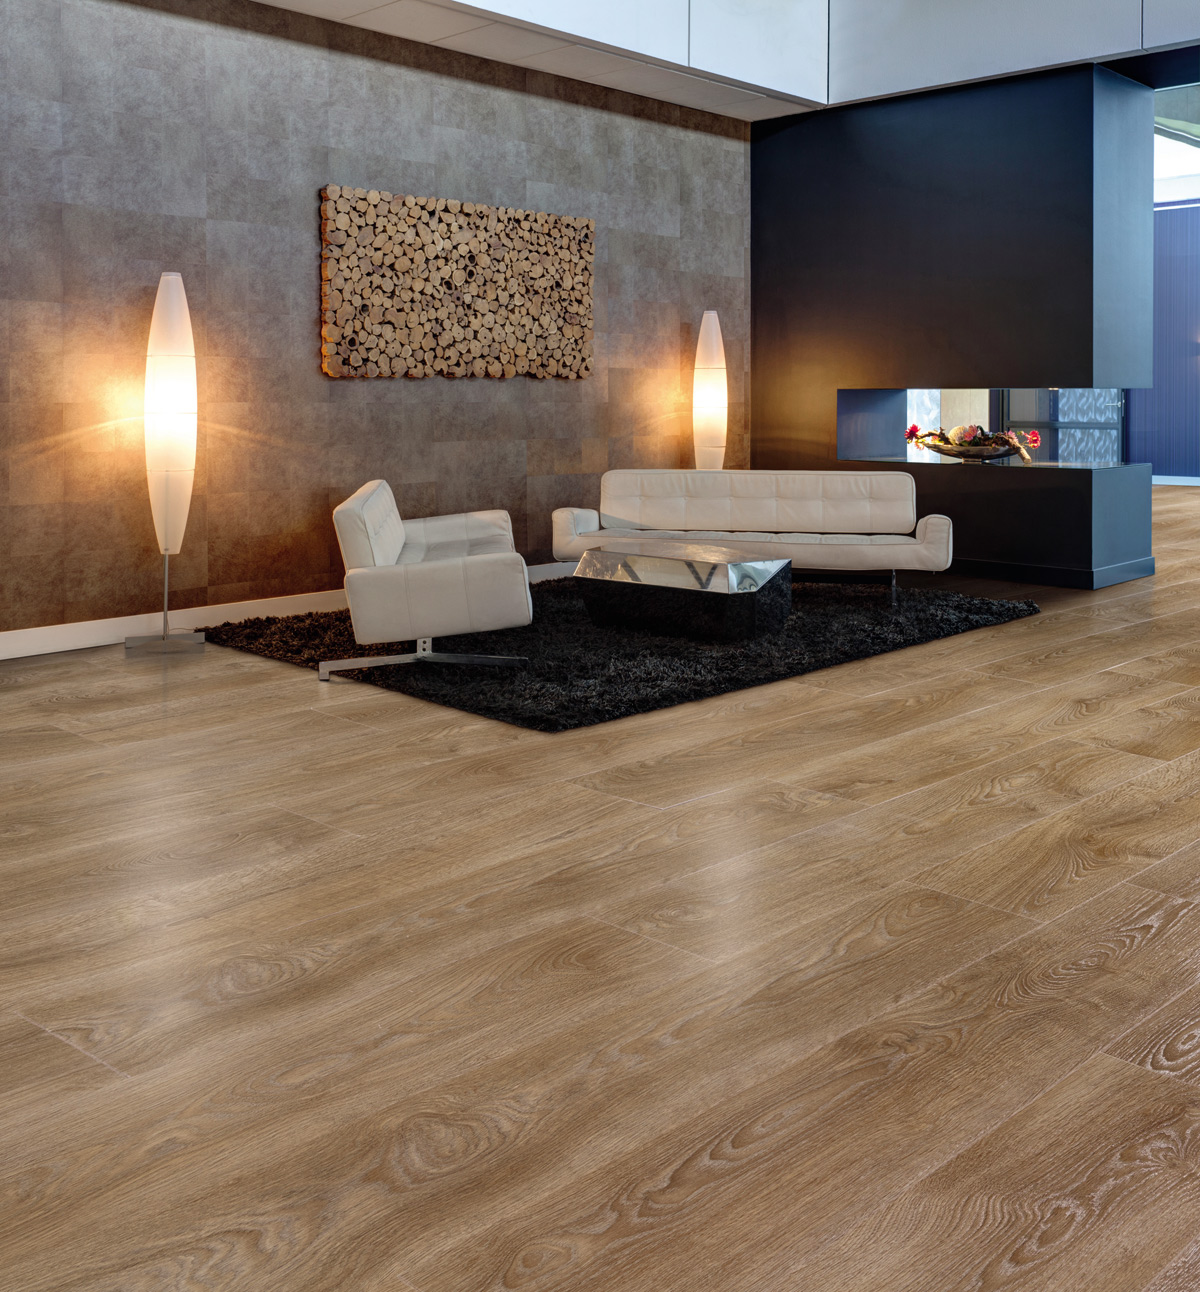 Divino vinyl somerset oak 52839 klick vinylboden for Boden shops deutschland